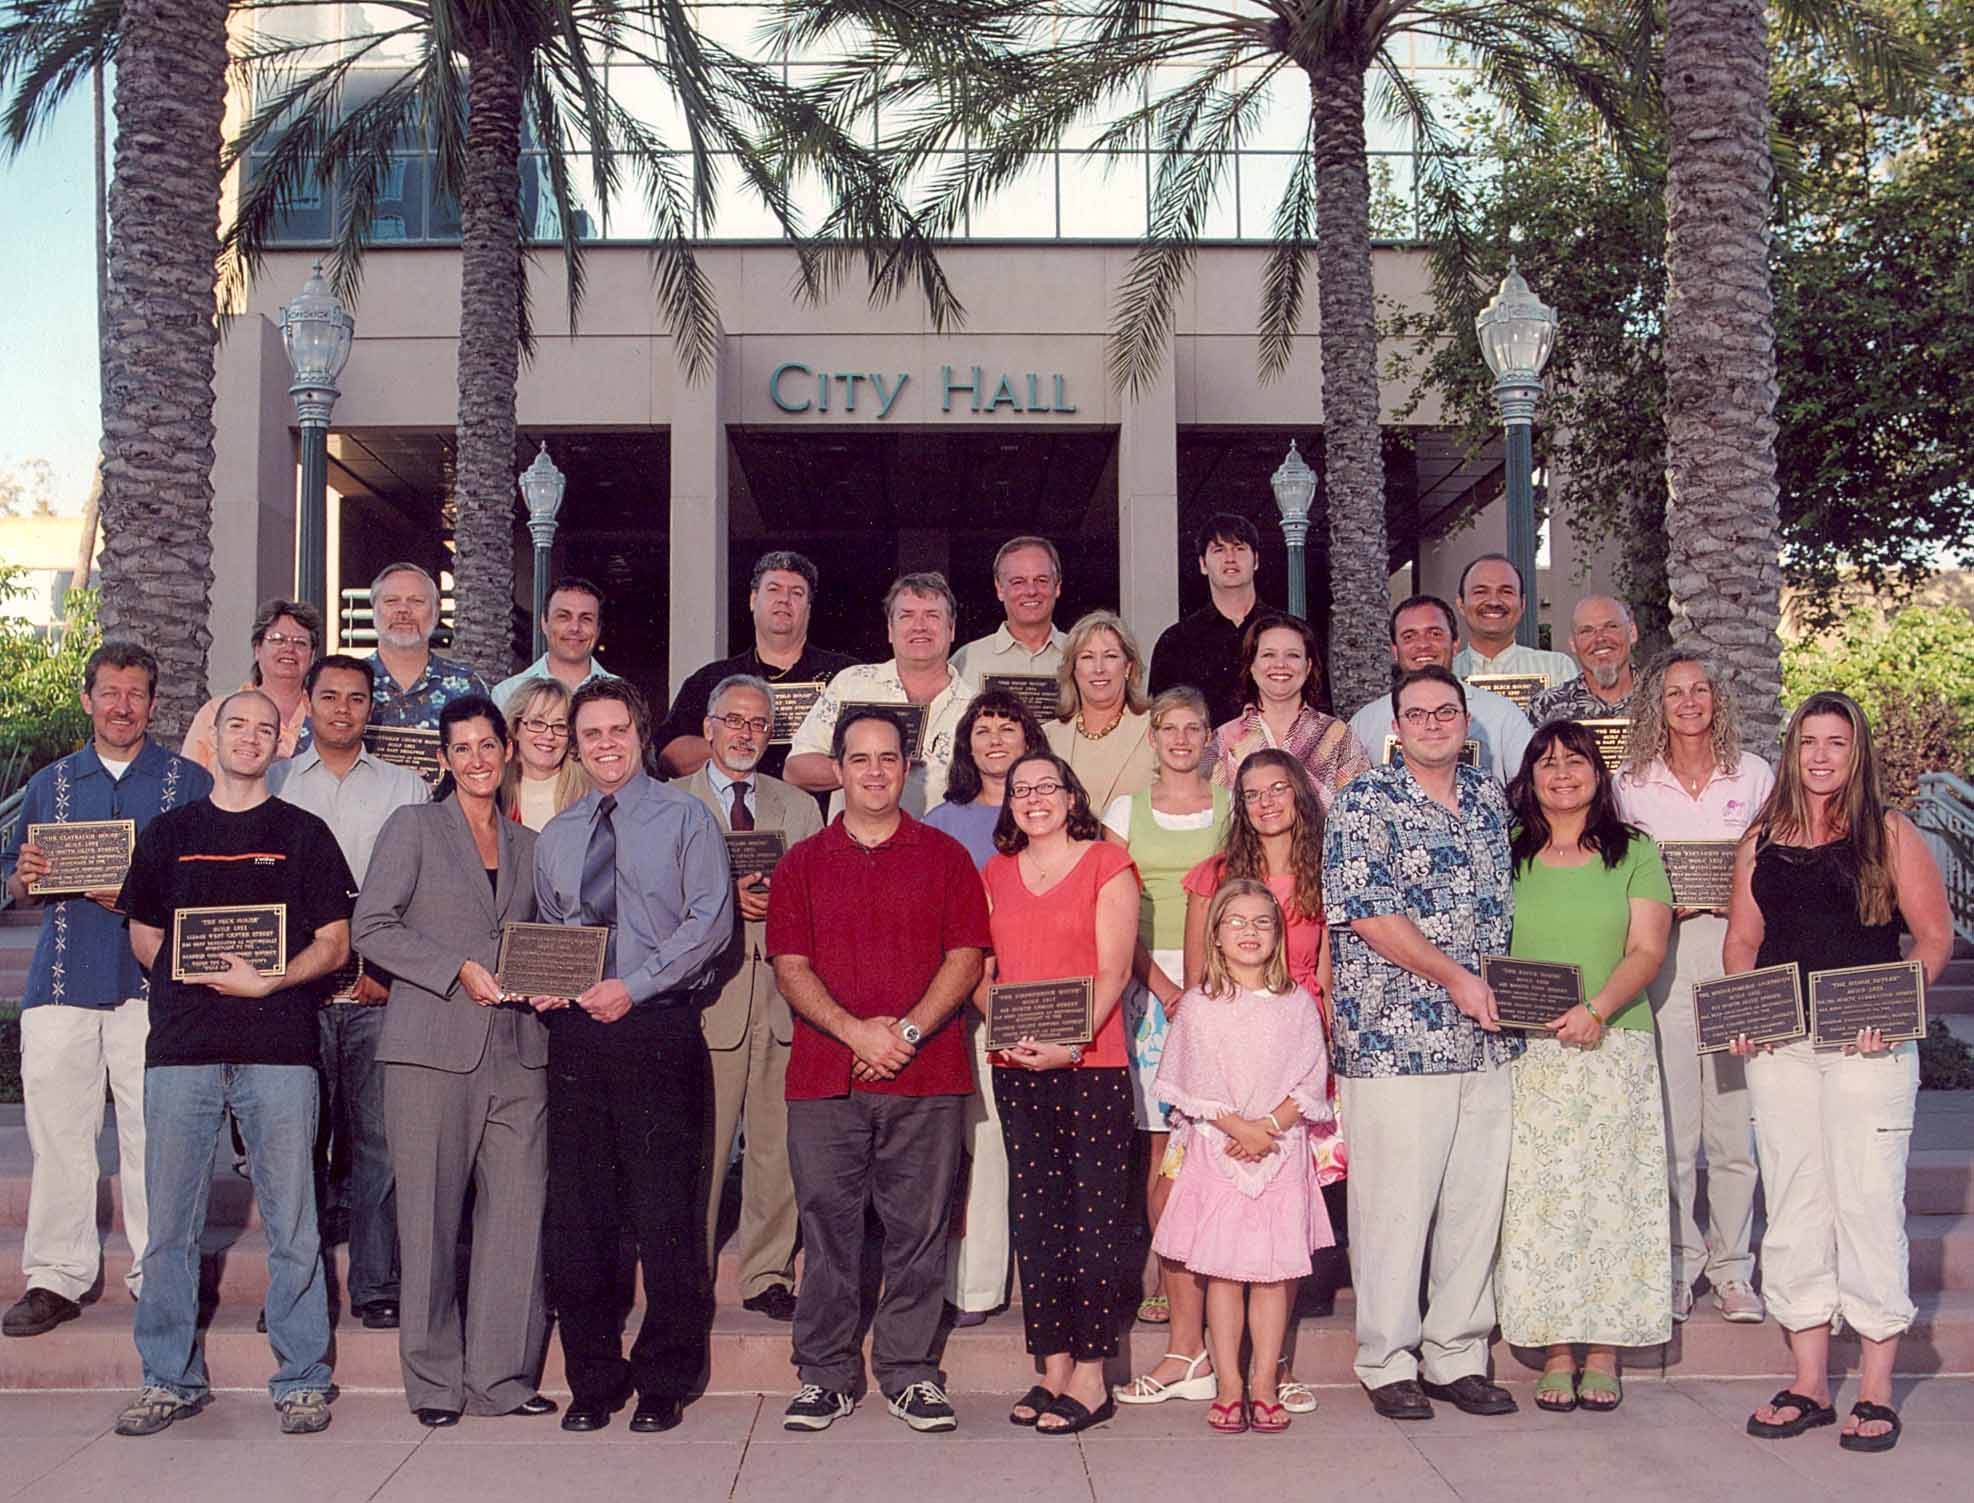 Group photo with the onwers holding their plaques for the Mills Act Participating Properties from 2004